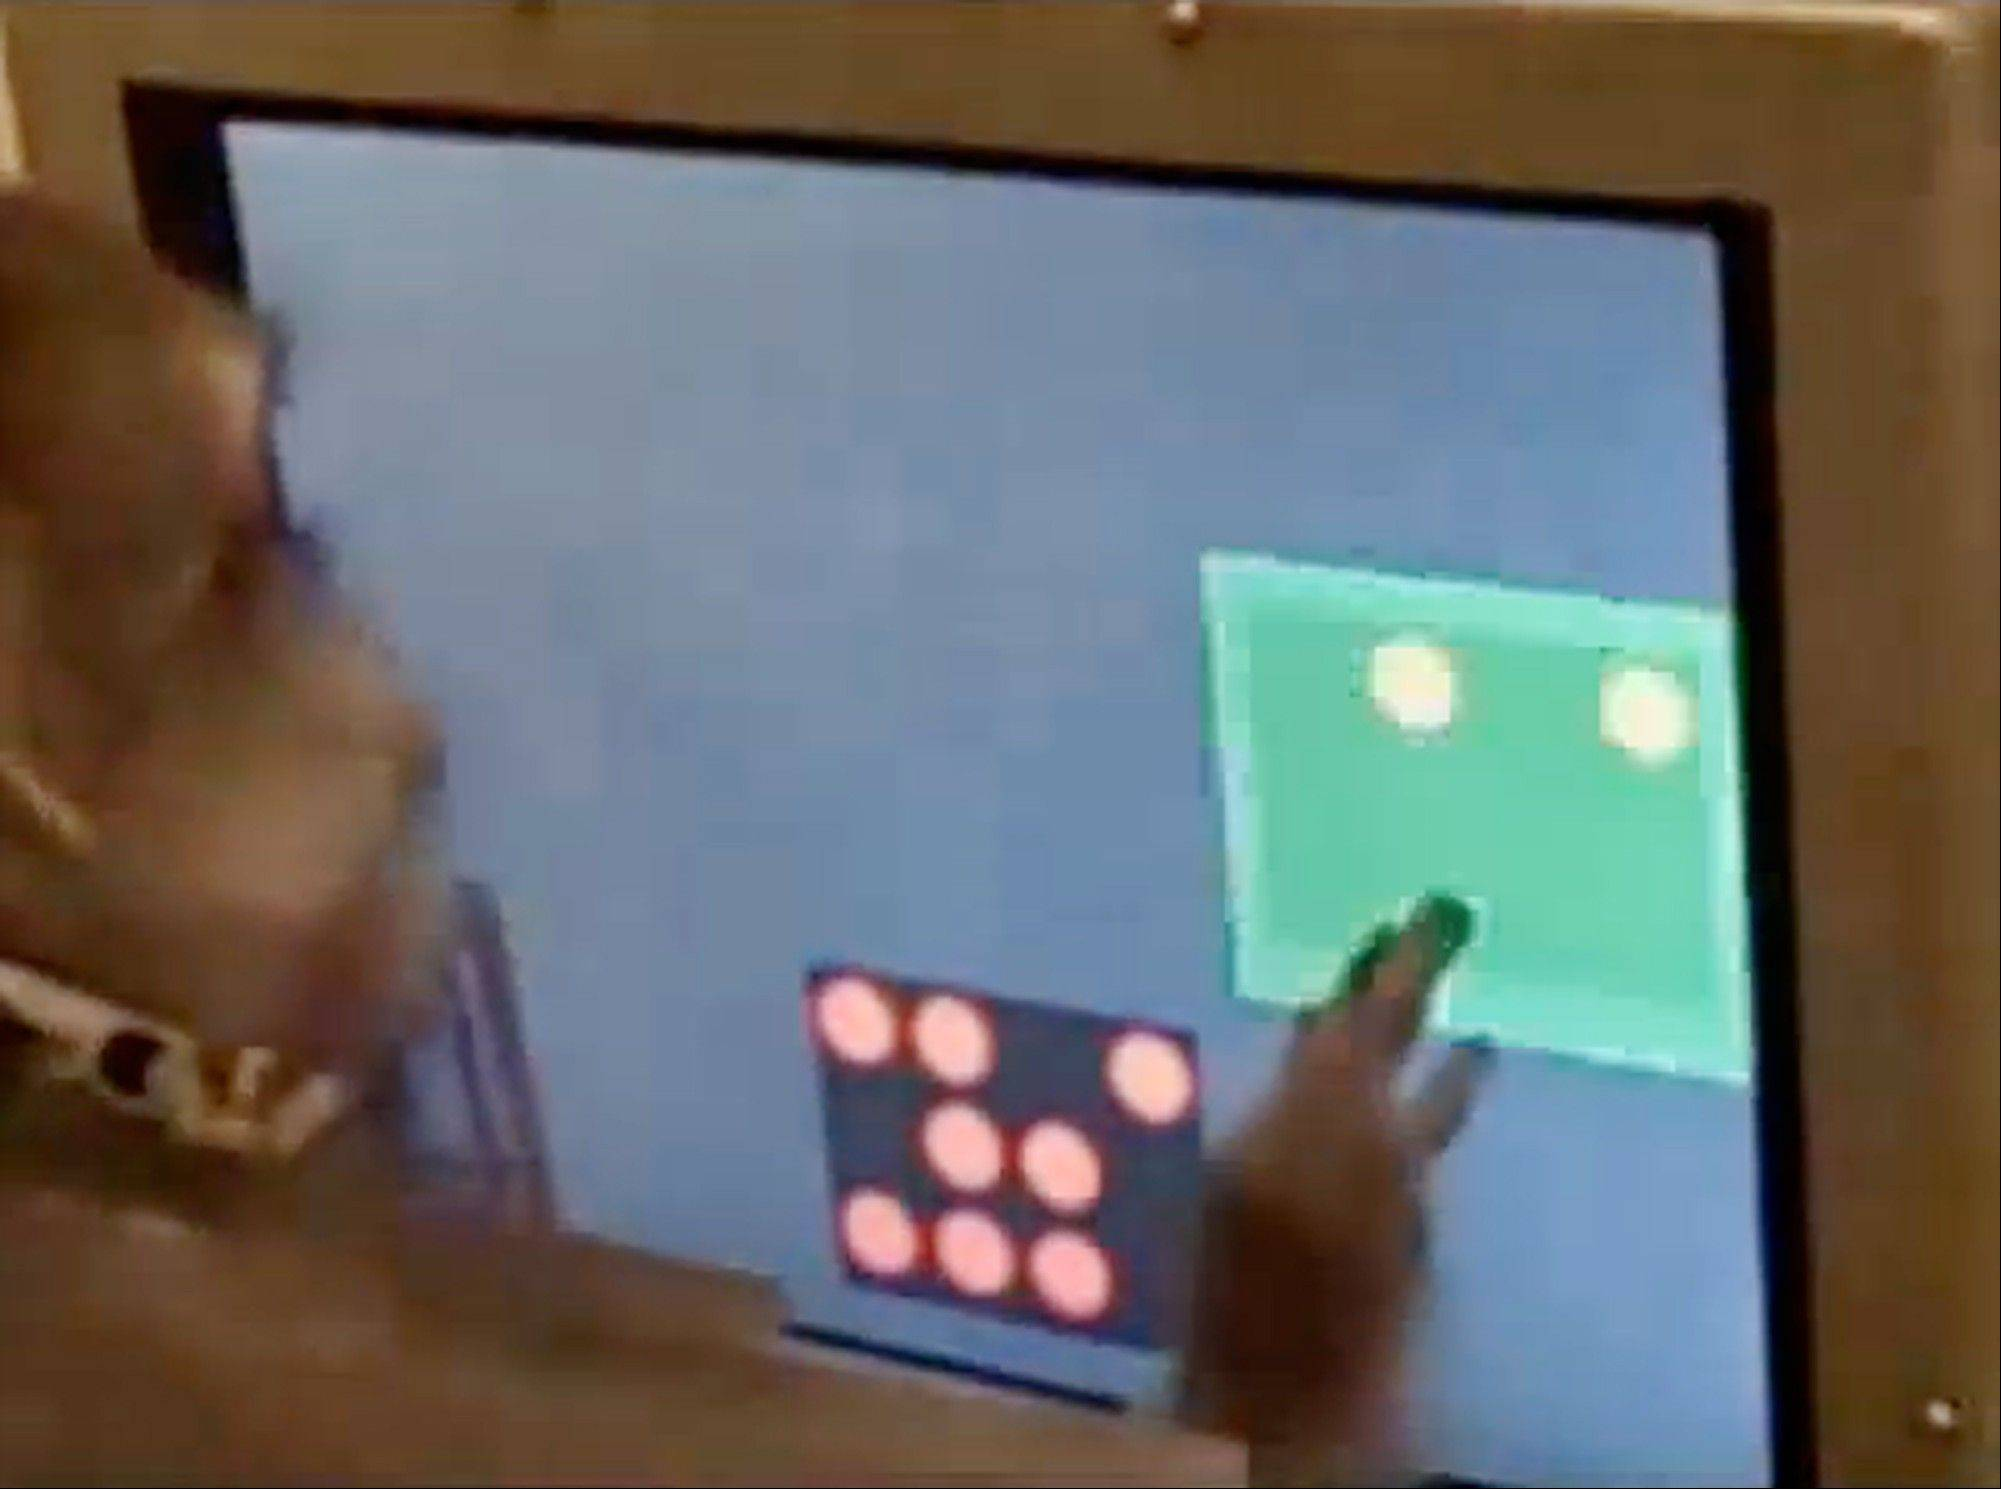 "In this undated image made from video provided by Duke University's Department of Psychology And Neuroscience, a Rhesus monkey solves addition and subtraction problems on a touch-screen computer as part of a study titled ""Basic Math in Monkeys and College Students"" by Jessica F. Cantlon and Elizabeth M. Brannon."